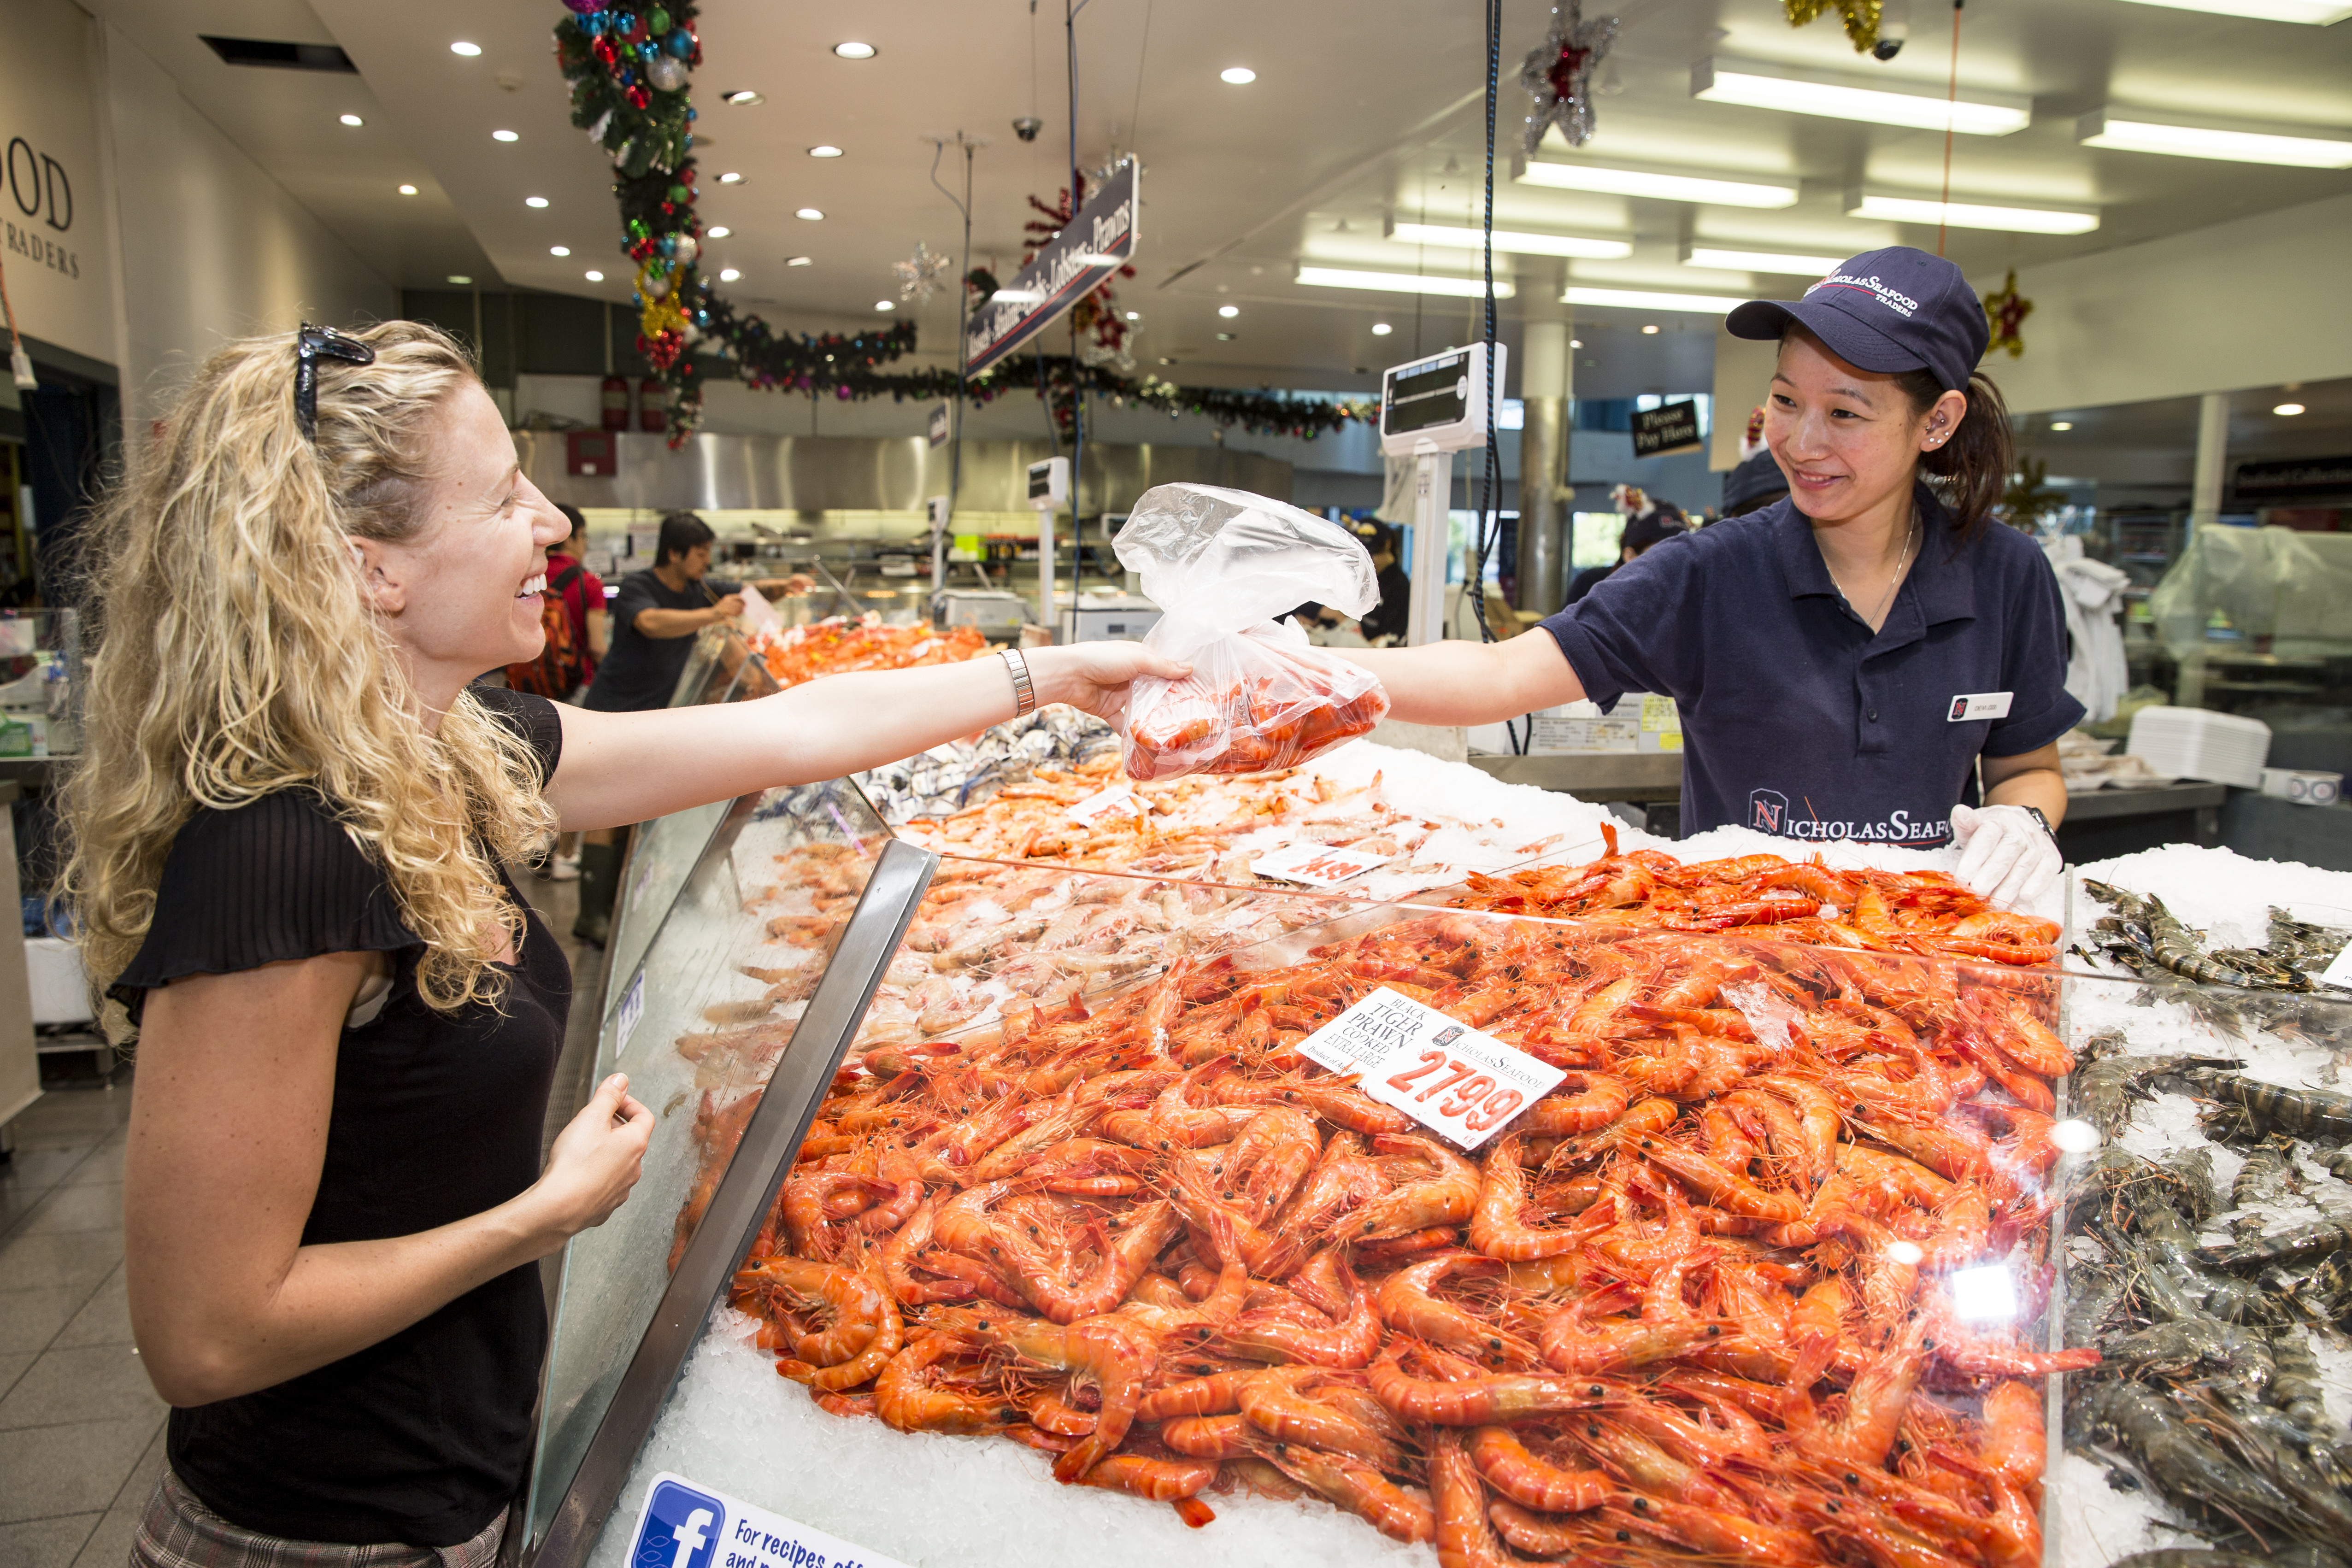 Christmas In Australia Food.Ask For Aussie Seafood This Christmas Says Peak Body